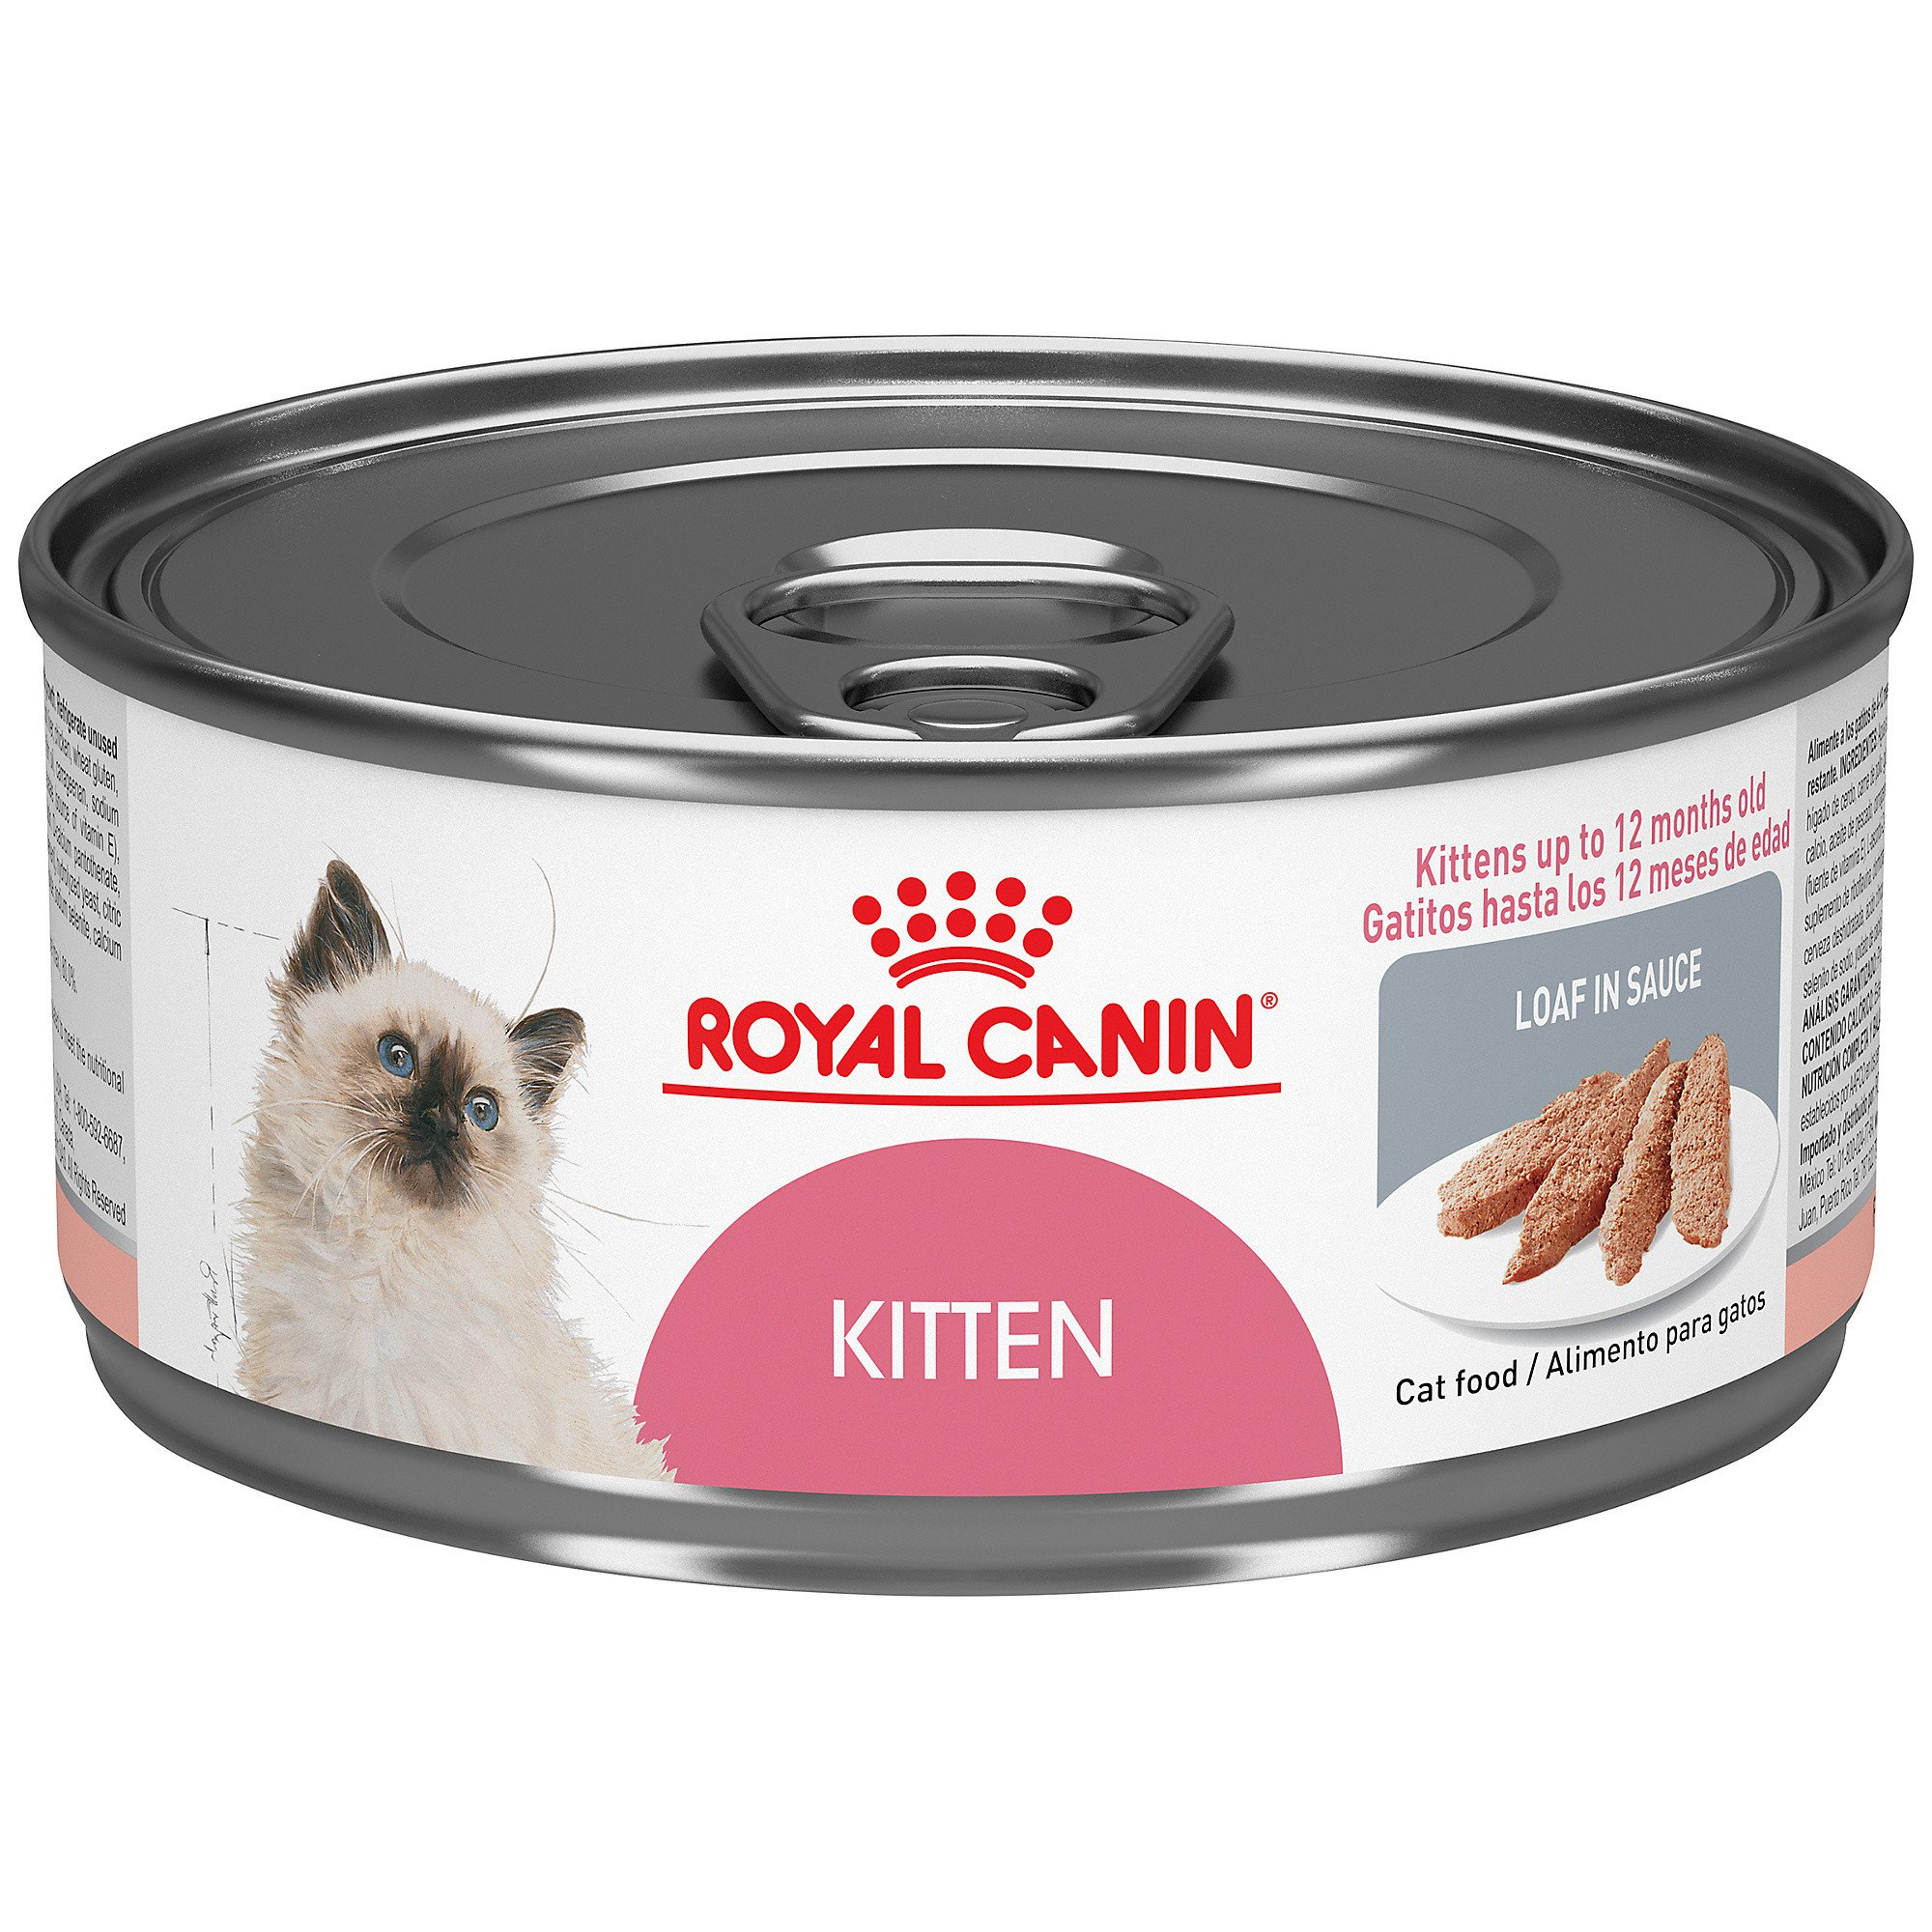 Royal Canin Canned Cat Food Kitten Instinctive